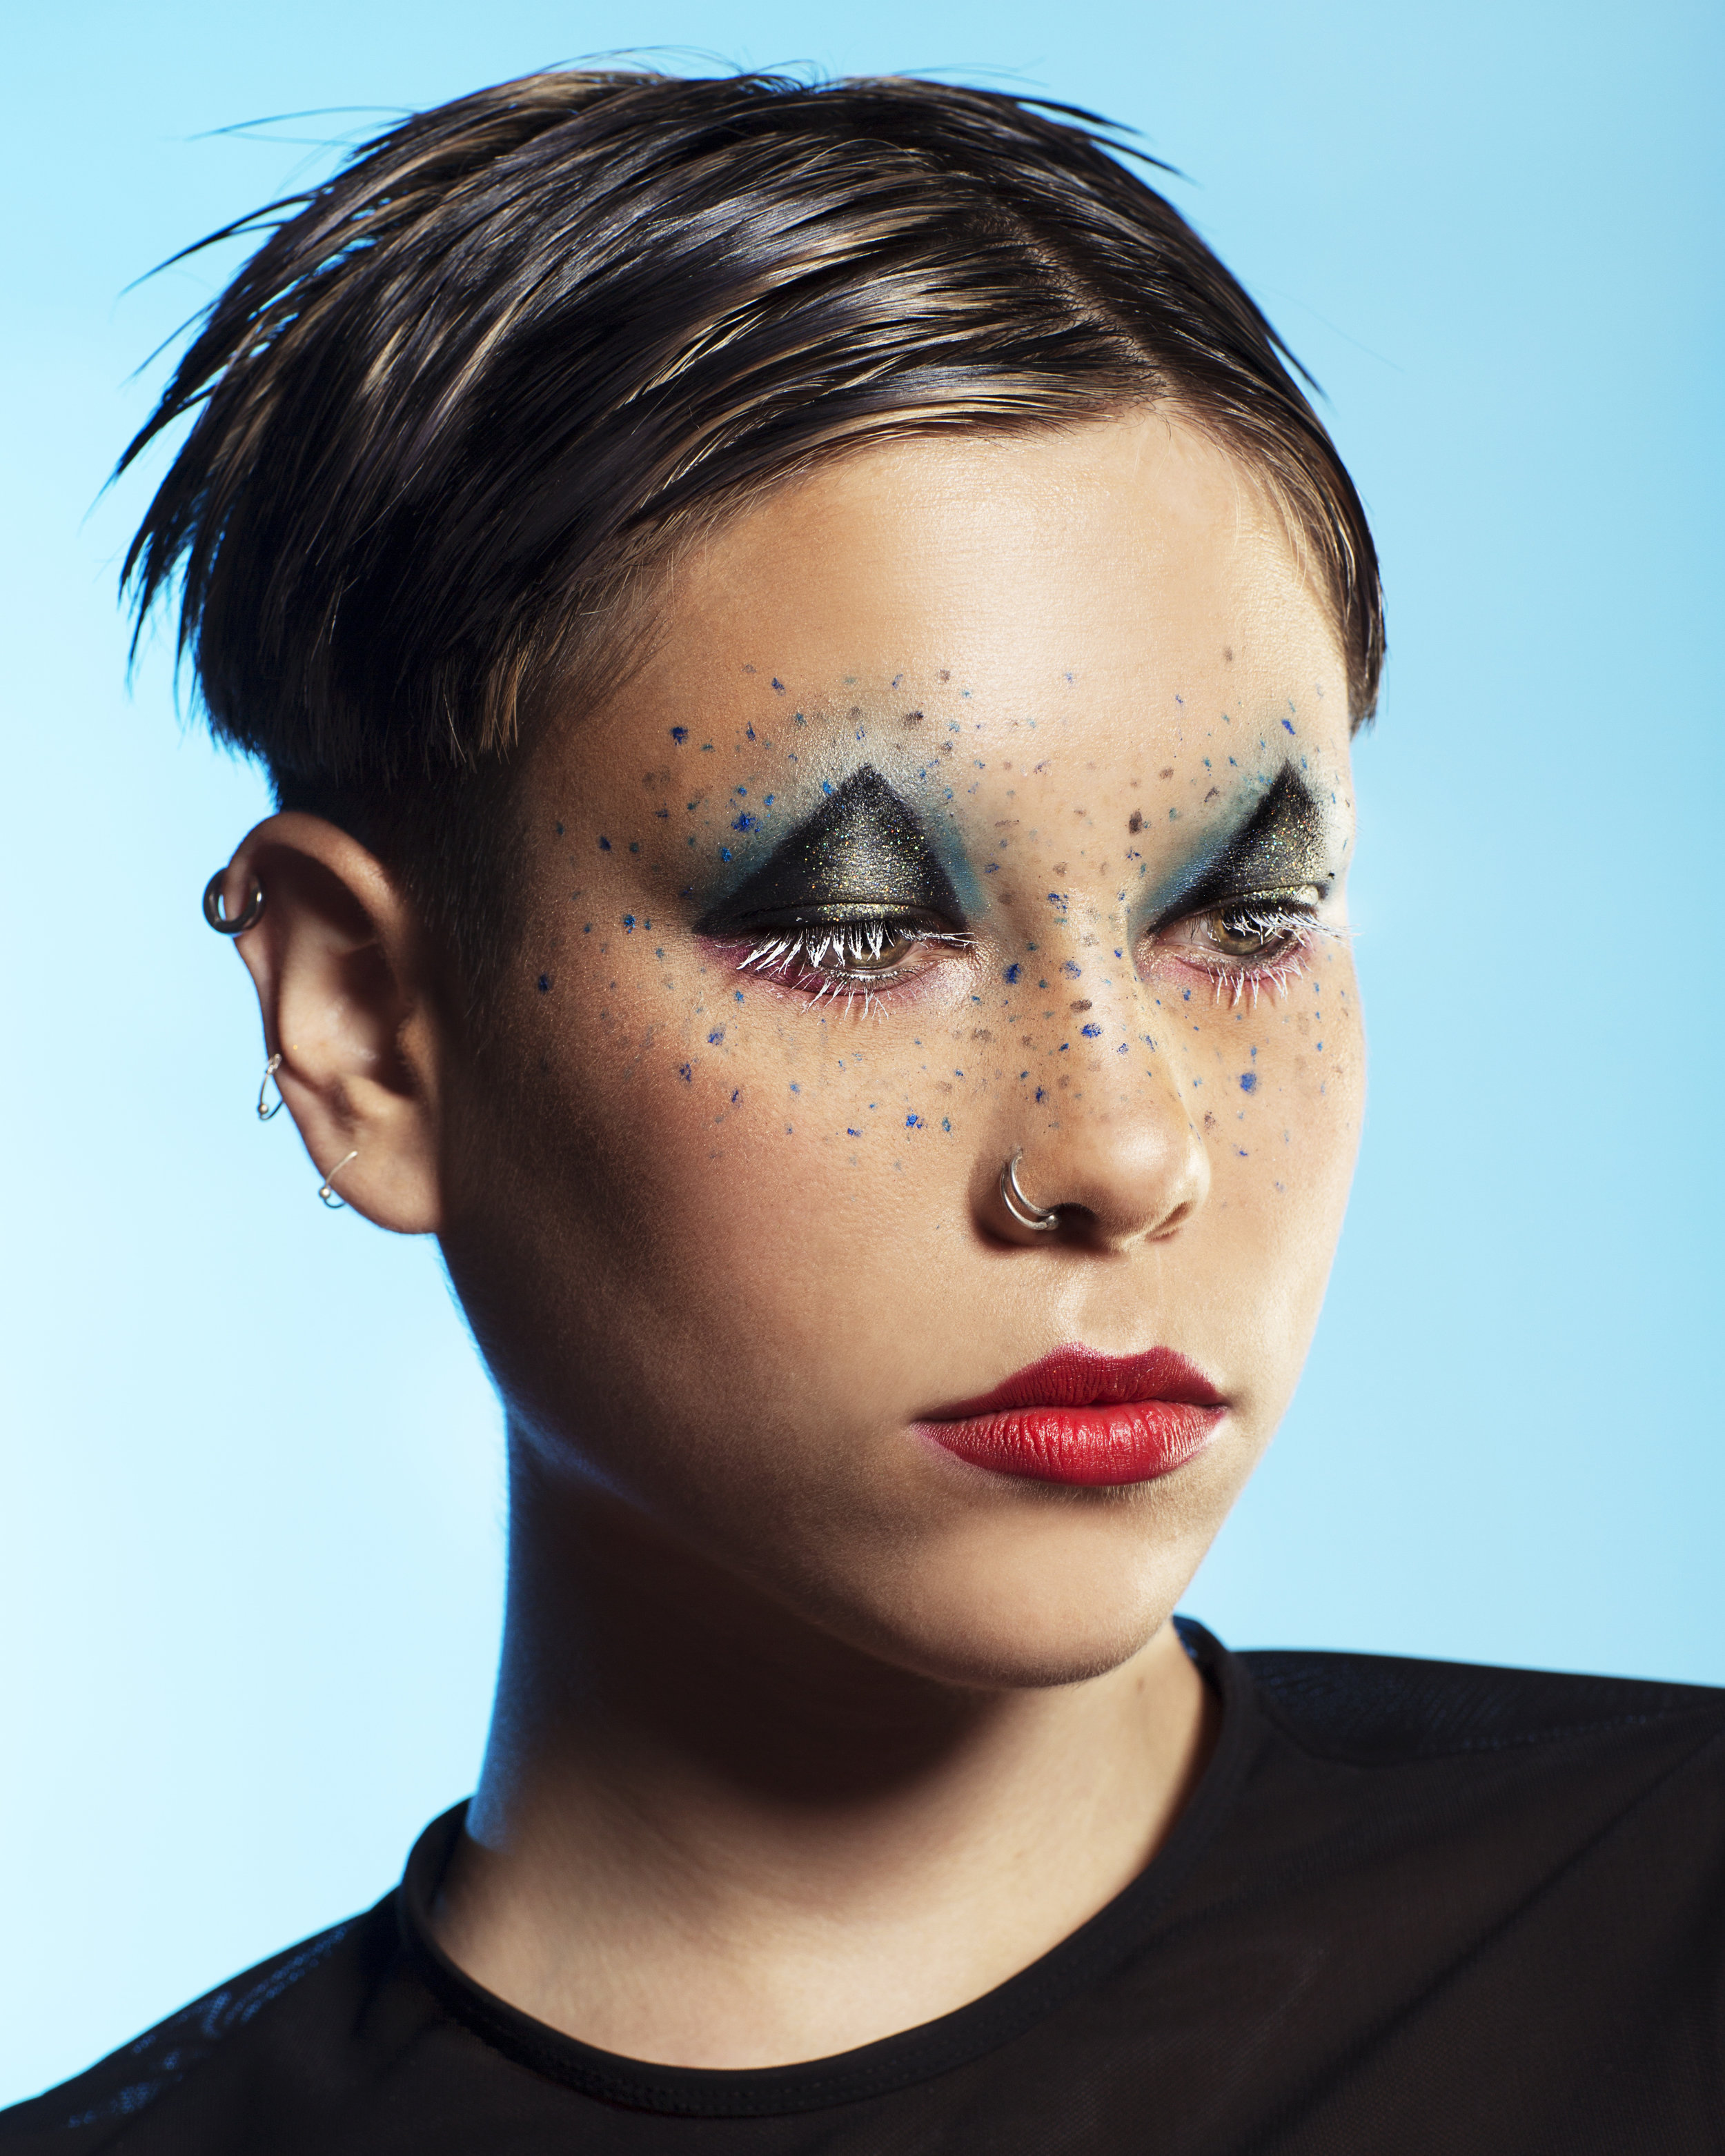 Photographer  :  Tayler Smith   Model:  Cheeky Ma   Makeup:  Slater Stanley featuring  MAC x Chromat  products